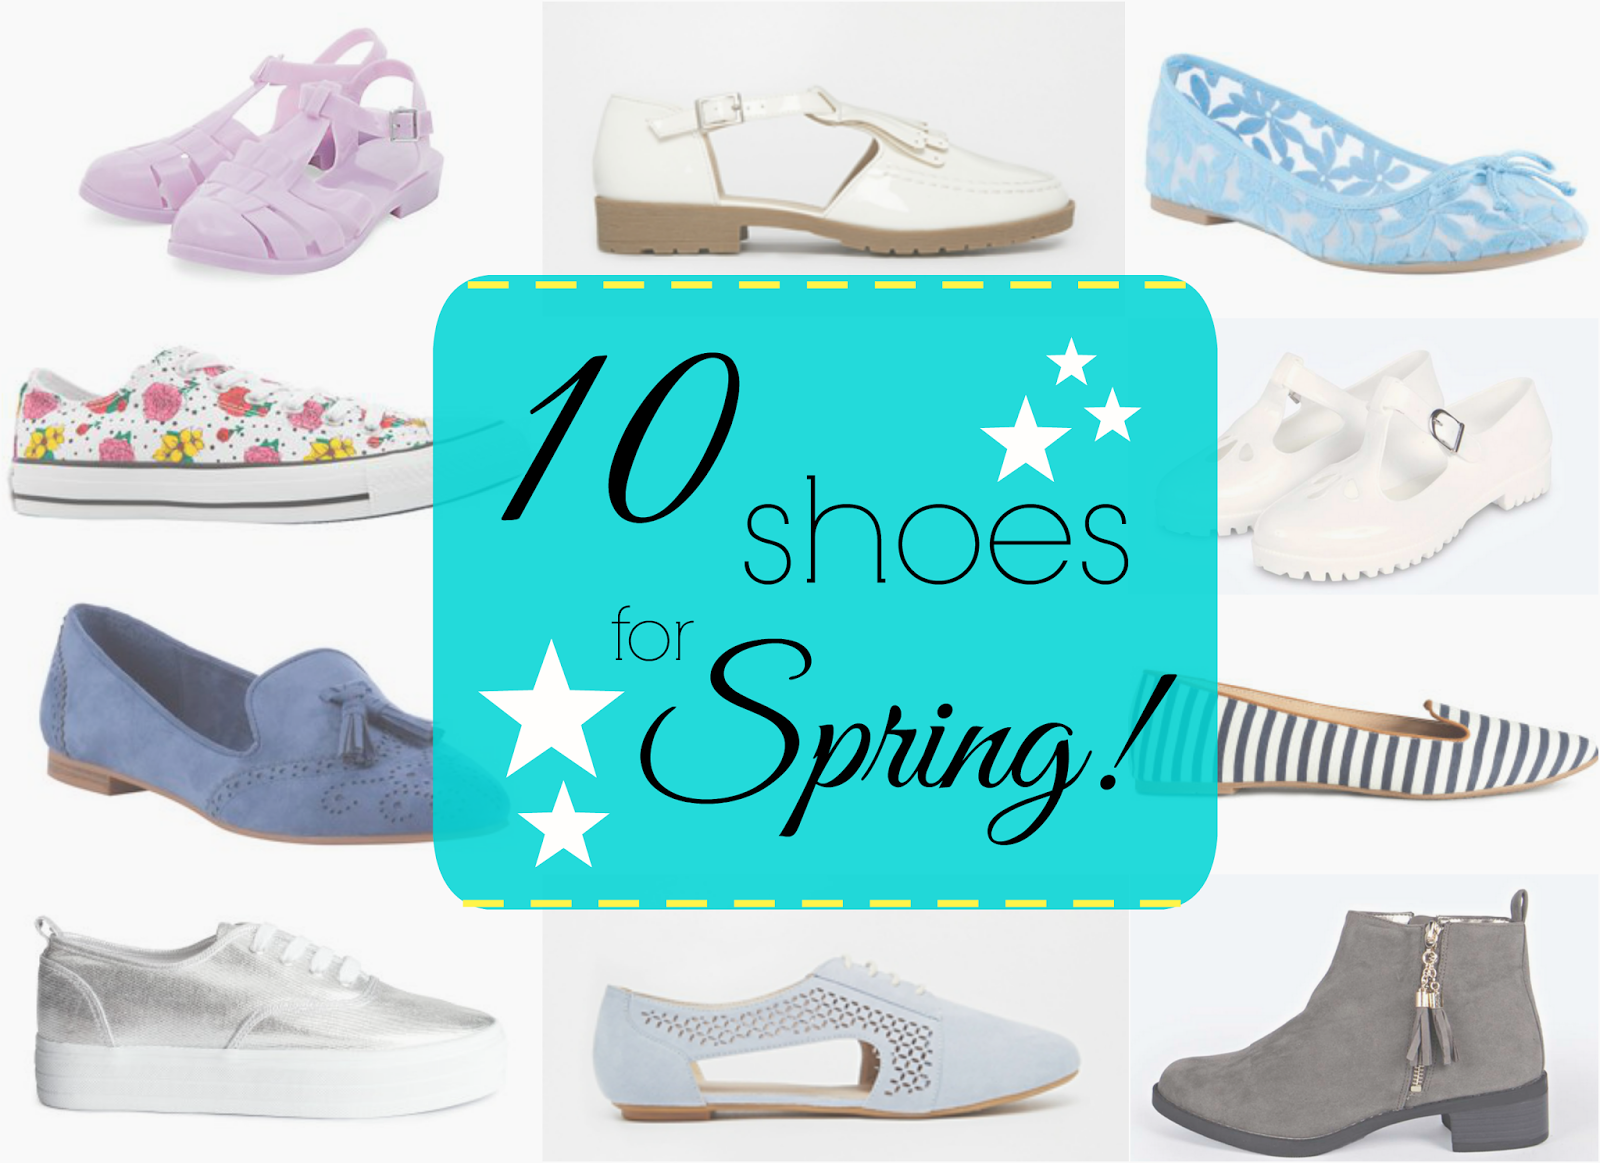 shoes flats spring ss15 wishlist asos new look boohoo f+f converse h&m jones bootmaker